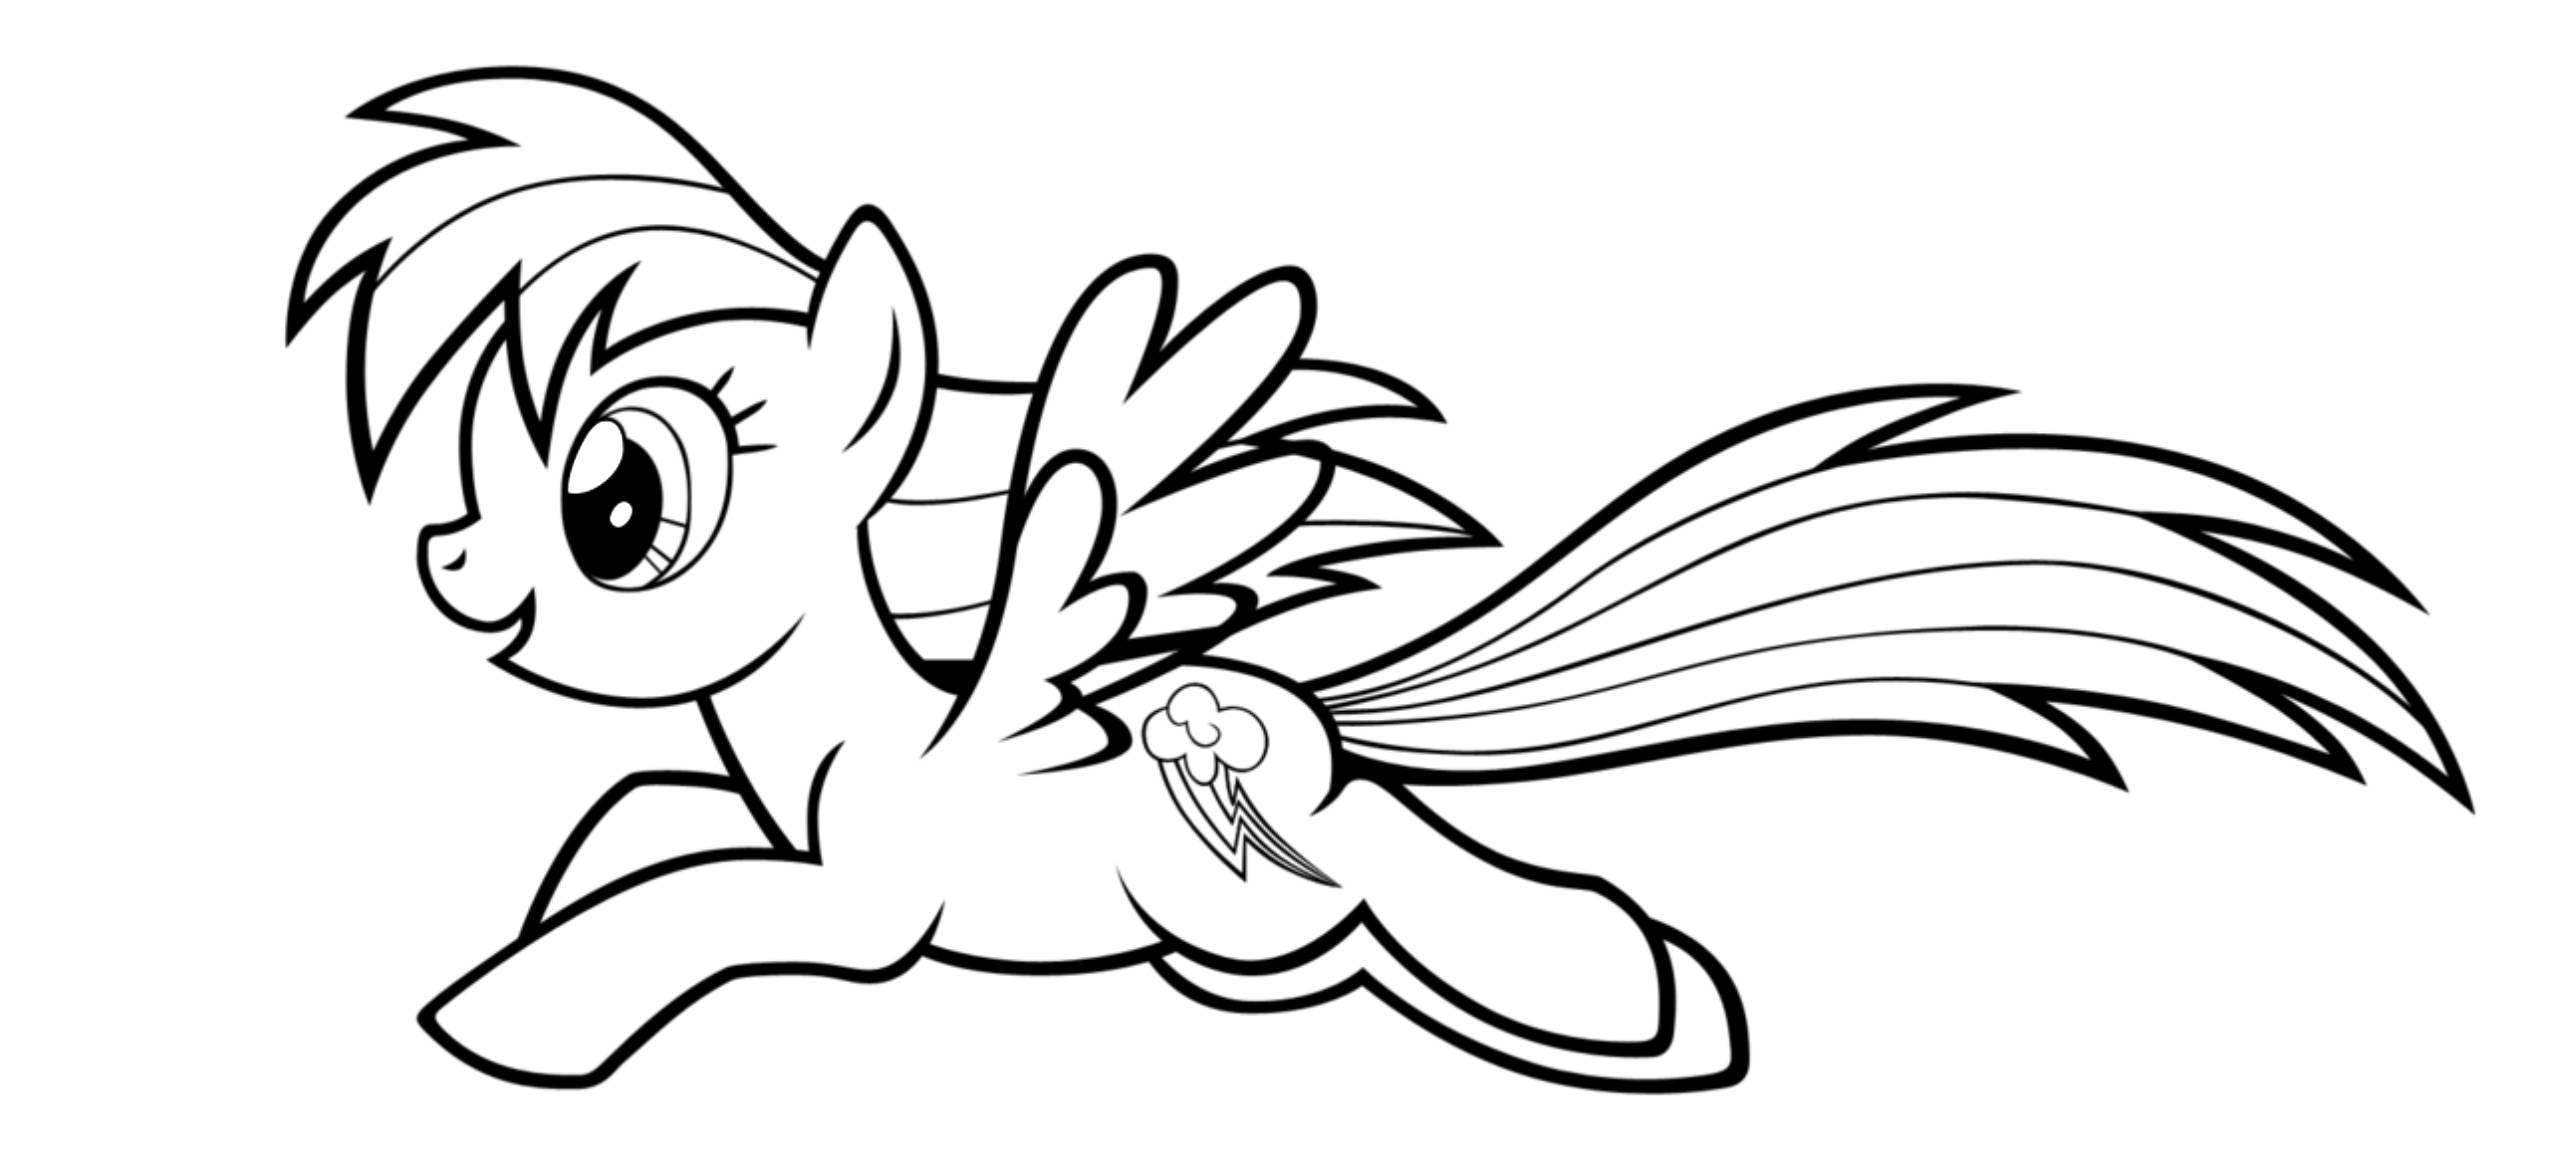 rainbow dash pictures to color rainbow dash coloring pages best coloring pages for kids dash color to pictures rainbow